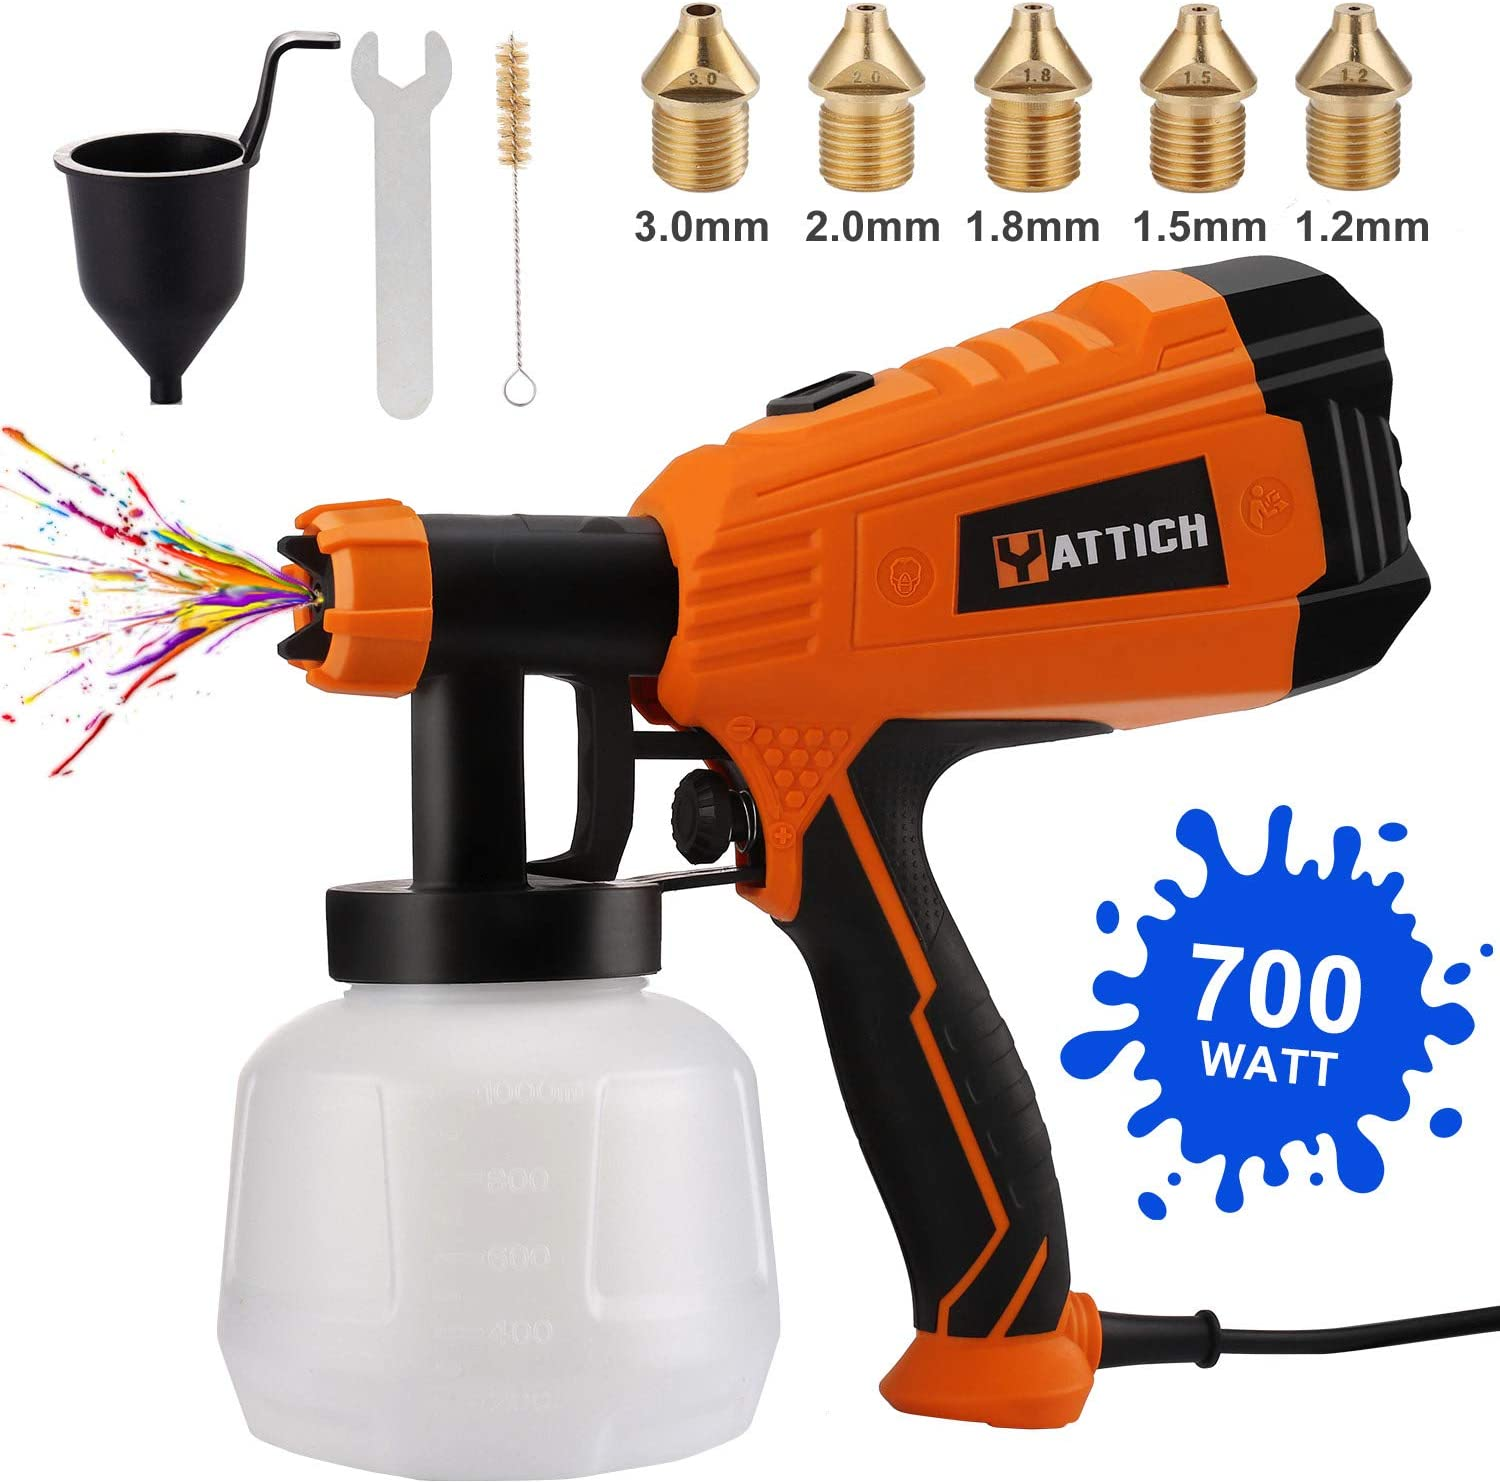 Yattich Paint Sprayer